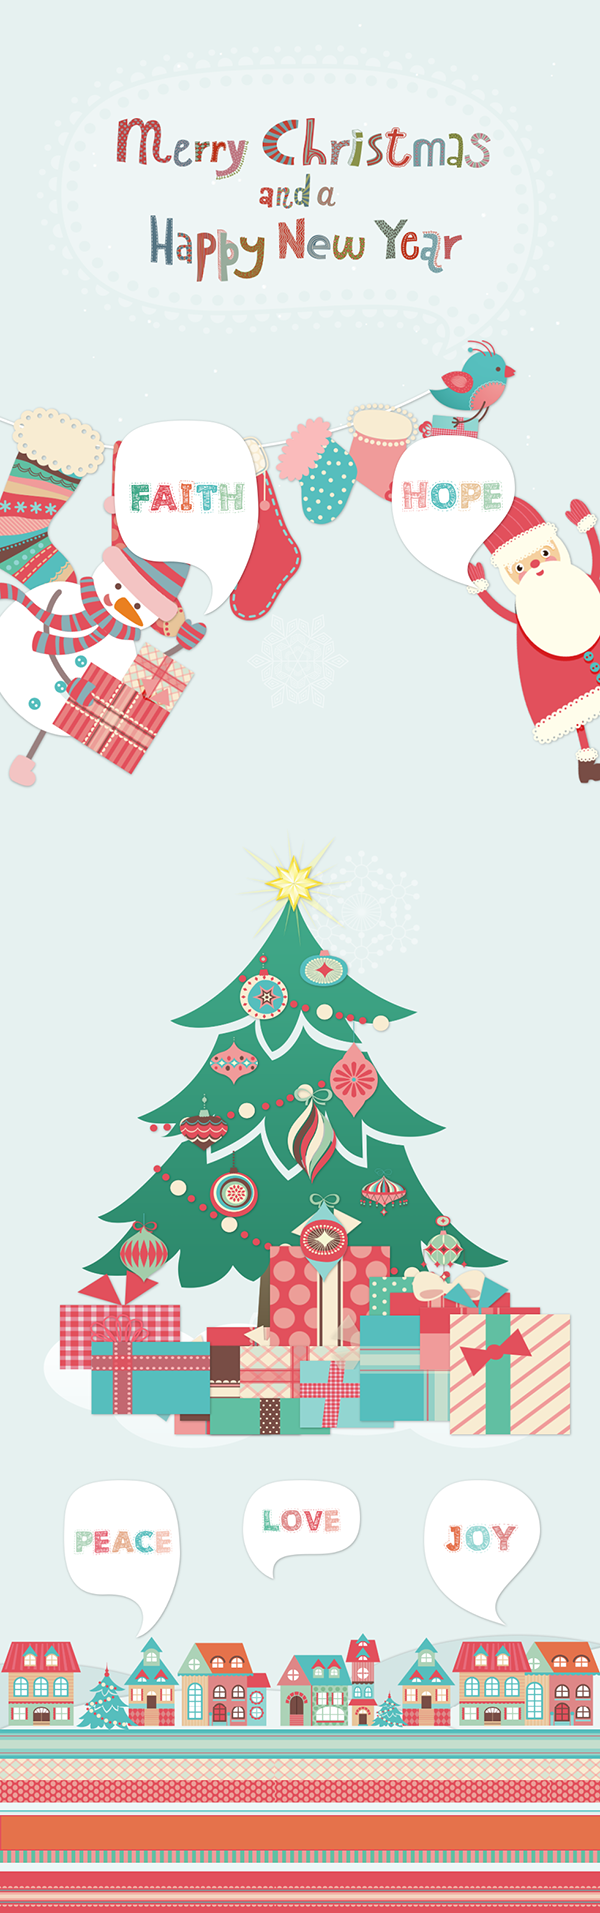 html5 christmas animation